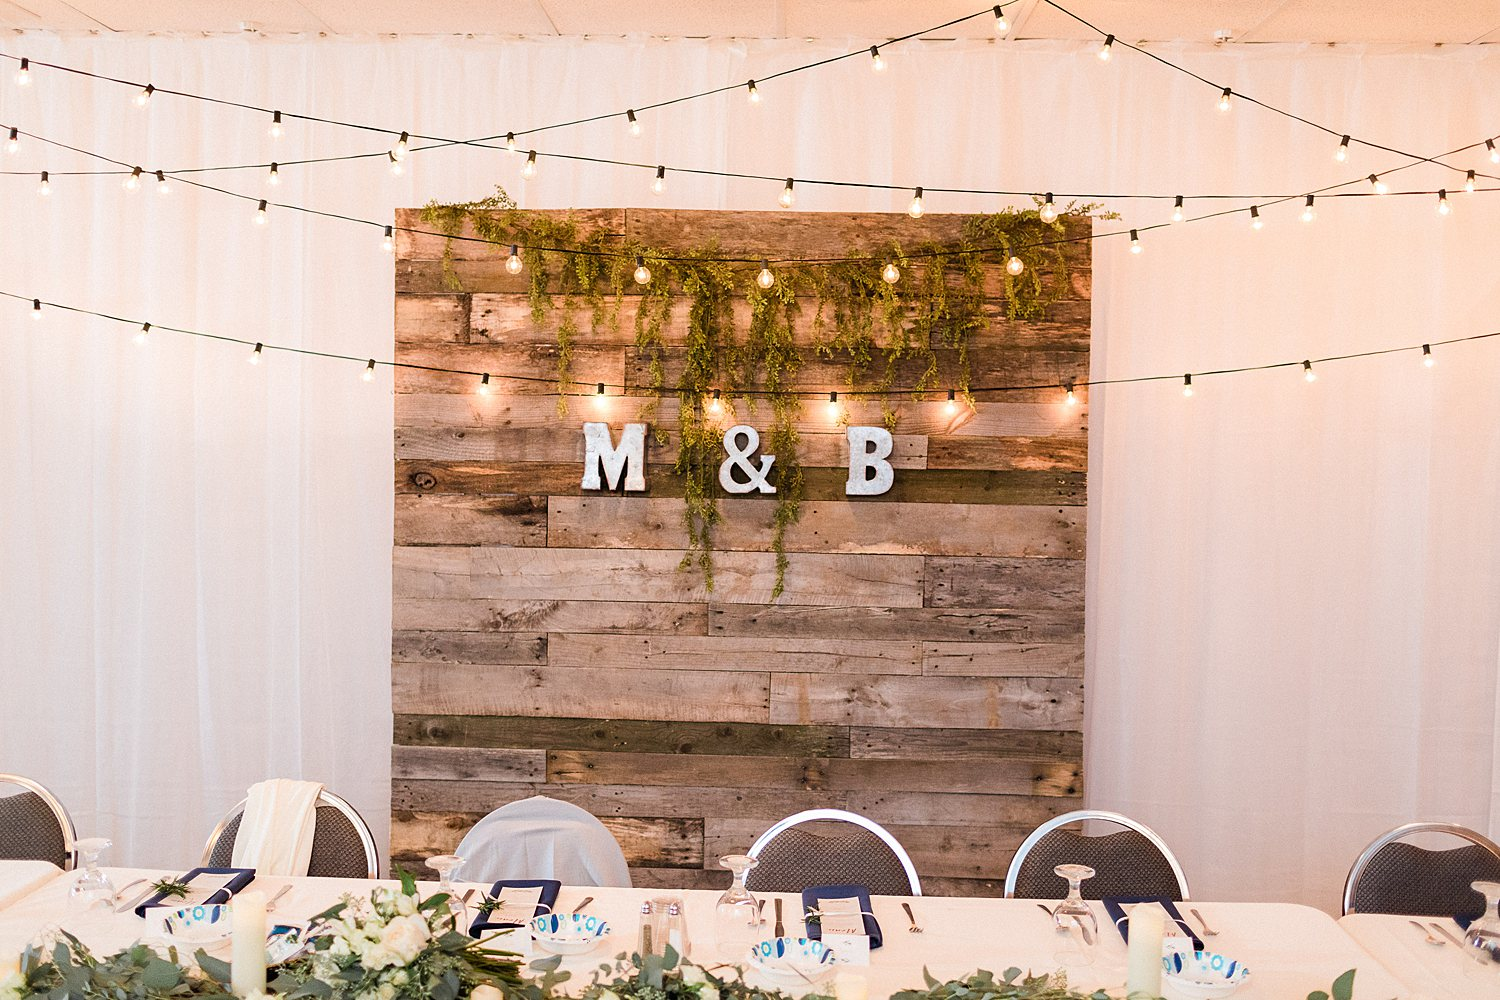 North_Central_Wisconsin_Event_Wedding_Venues_Fall_Weddings_The_Bailiwick_Venue_James-Stokes-Photography099.jpg